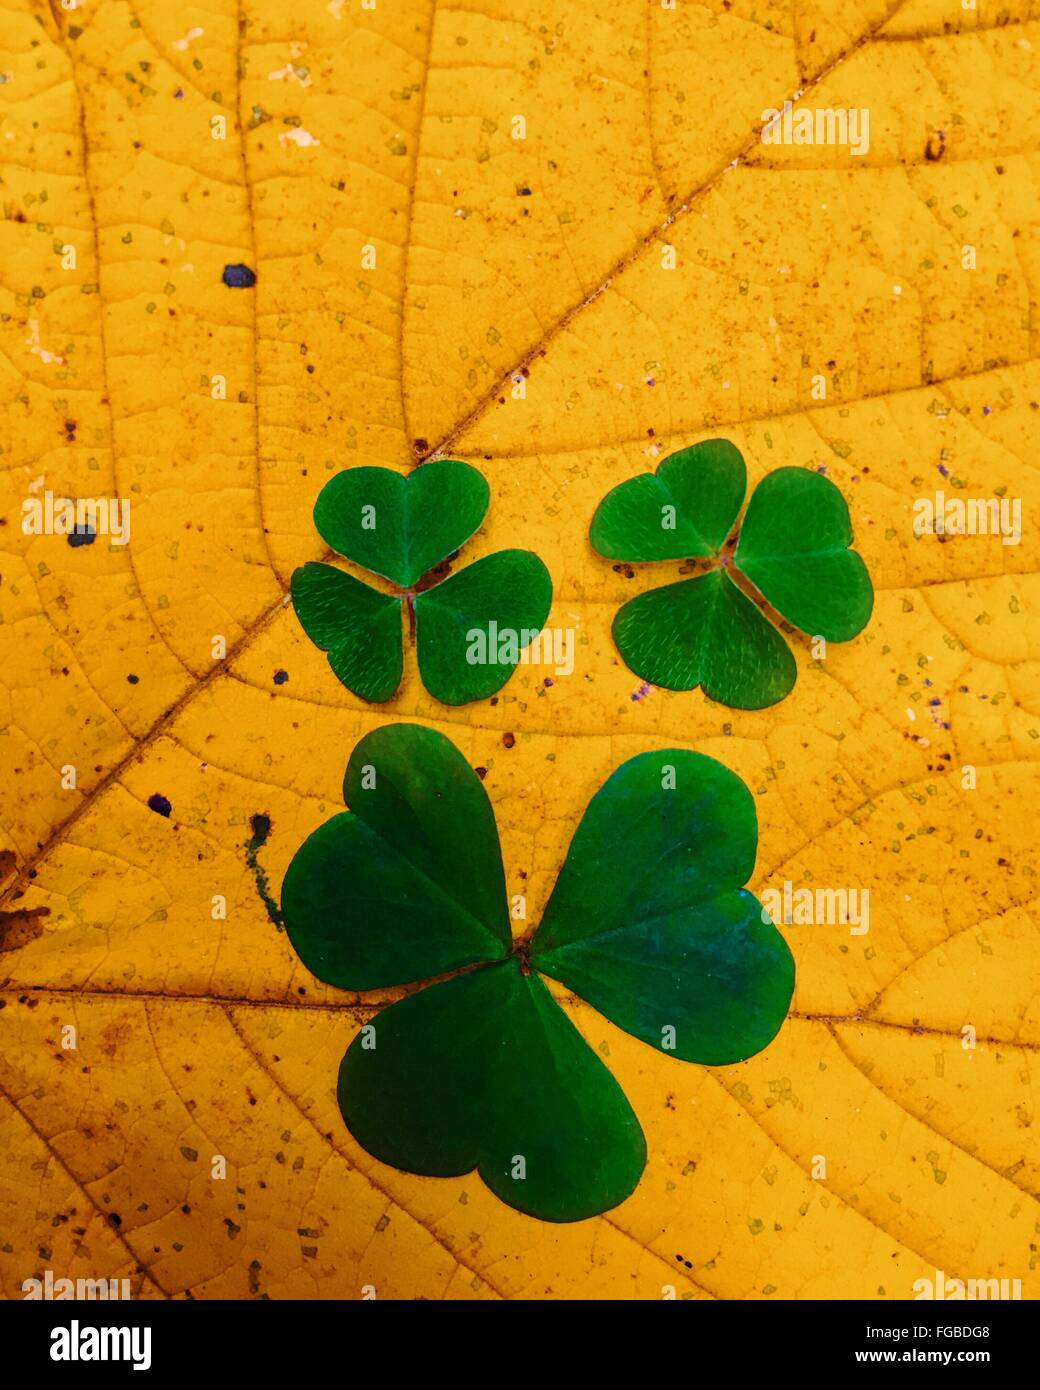 Close-Up Of Leaves Growing Outdoors During Autumn - Stock Image